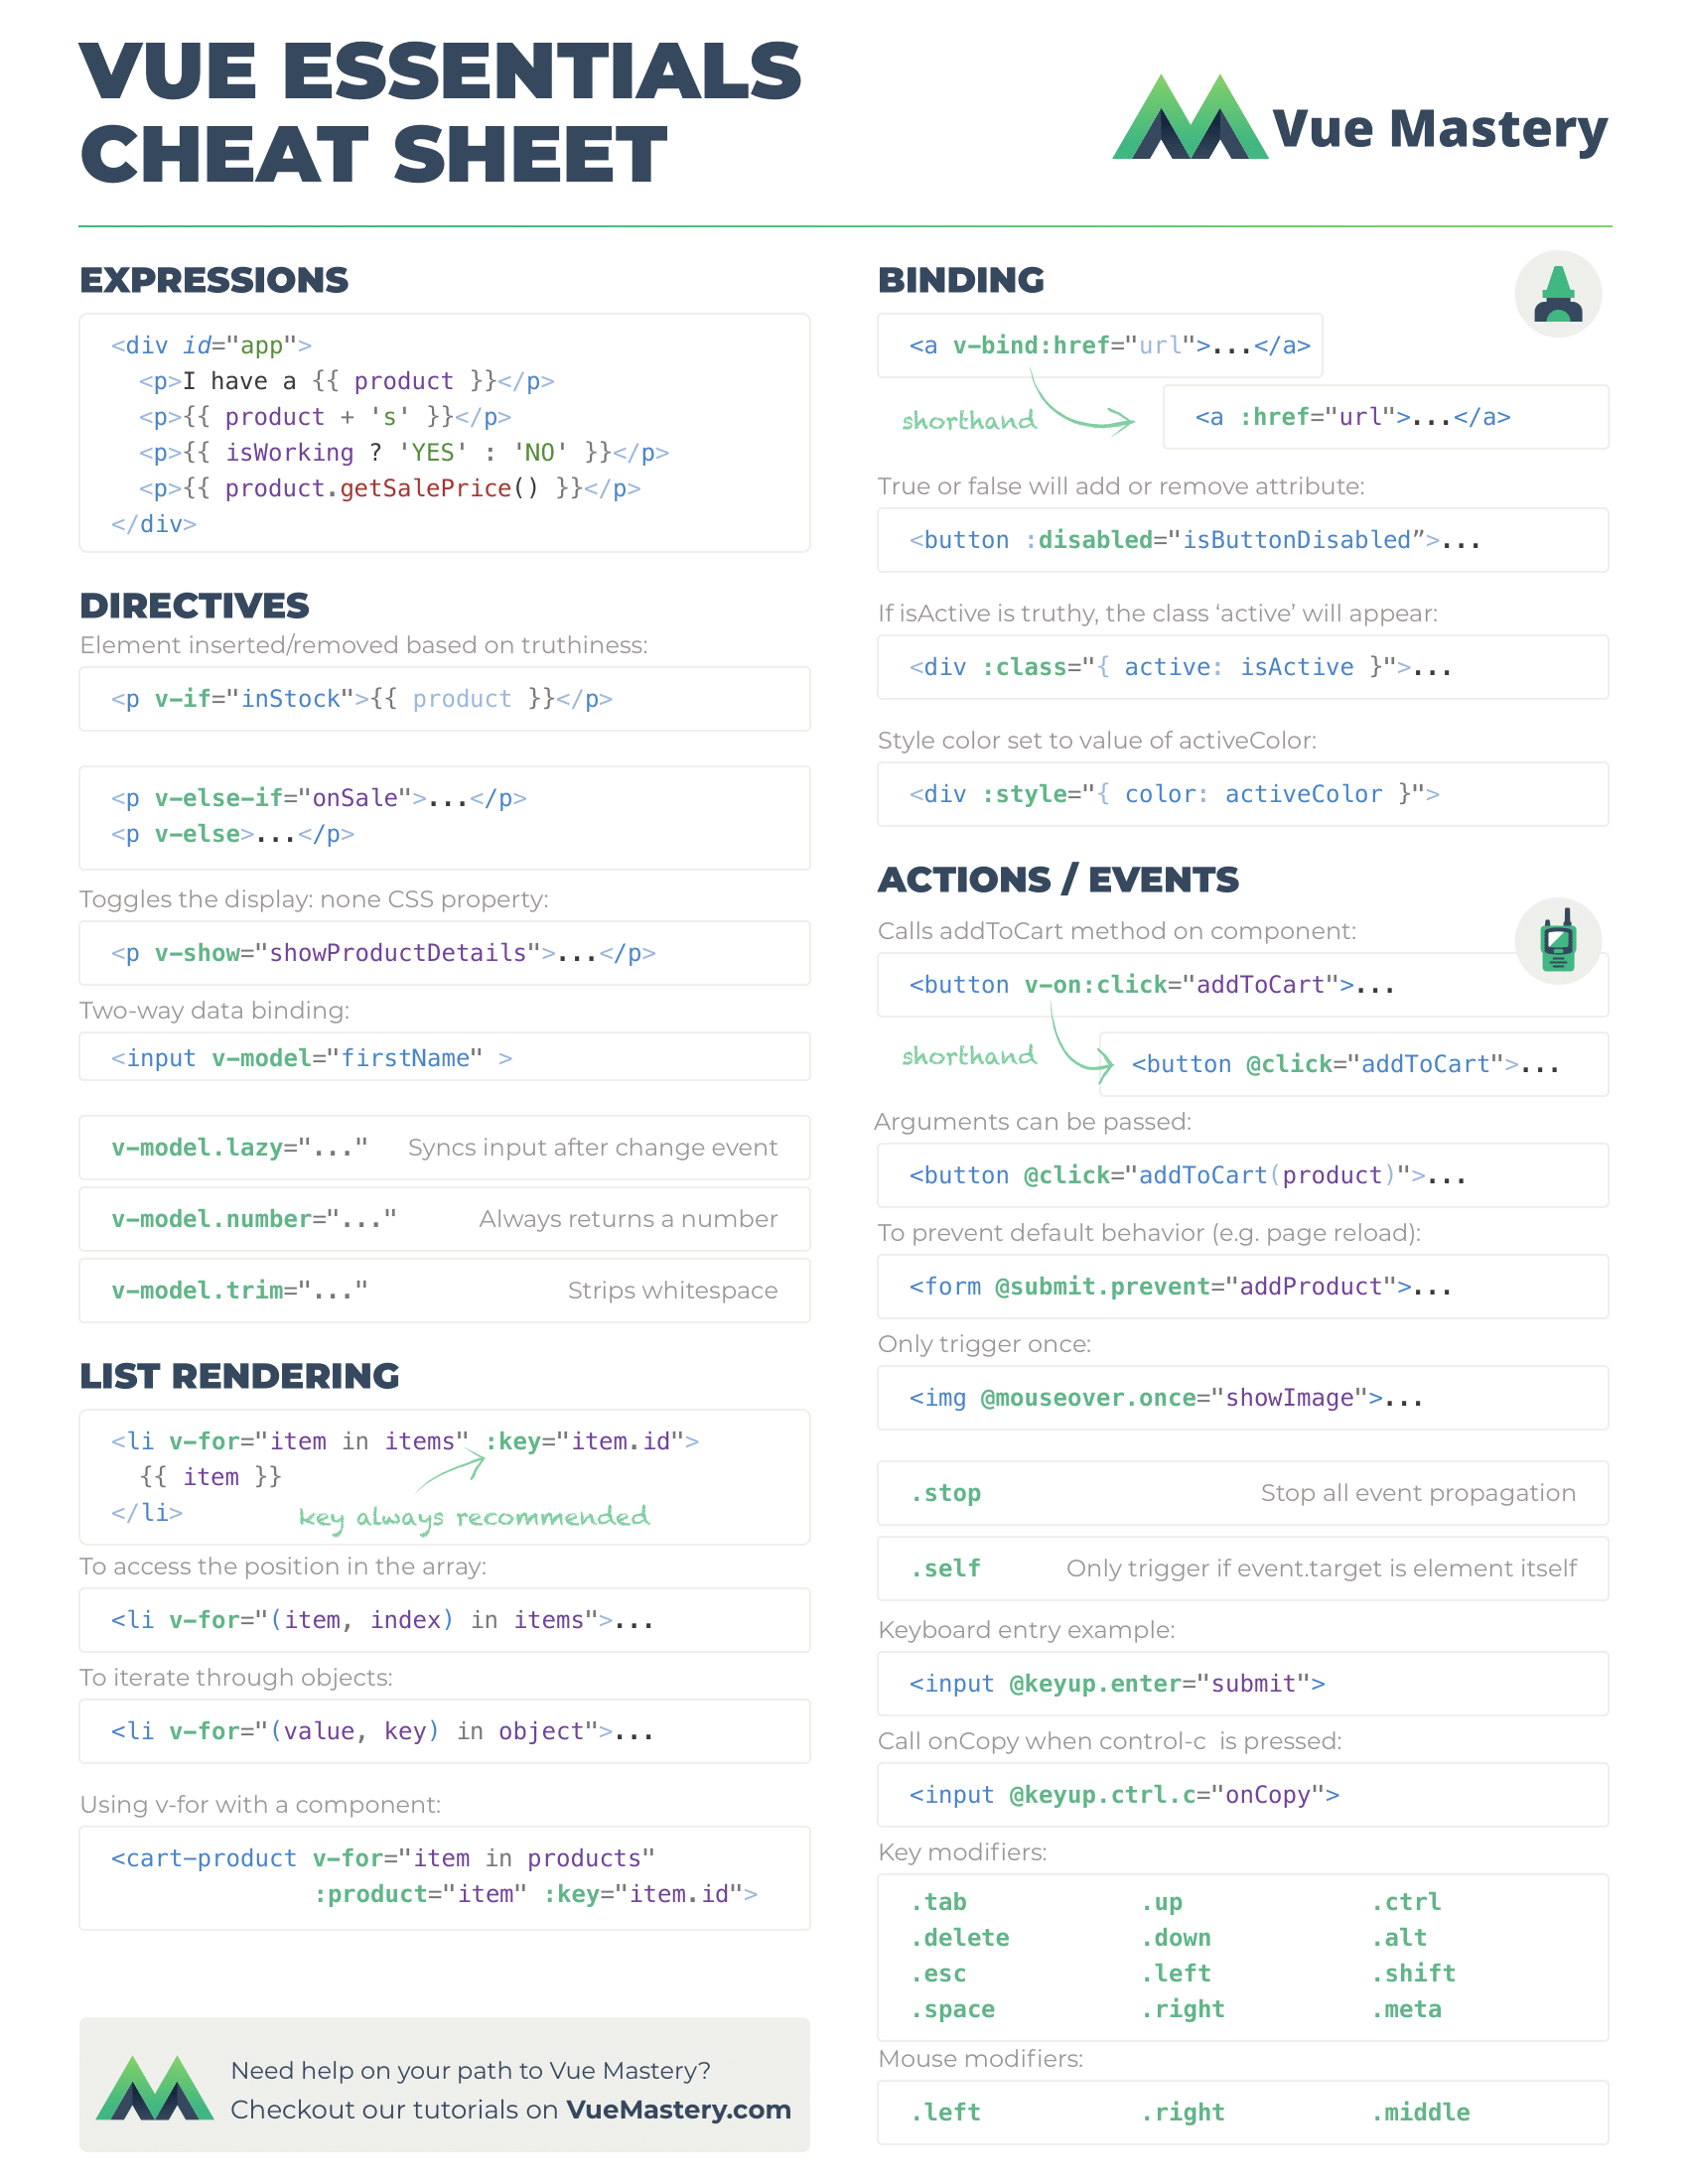 vue_cheat_sheet_1